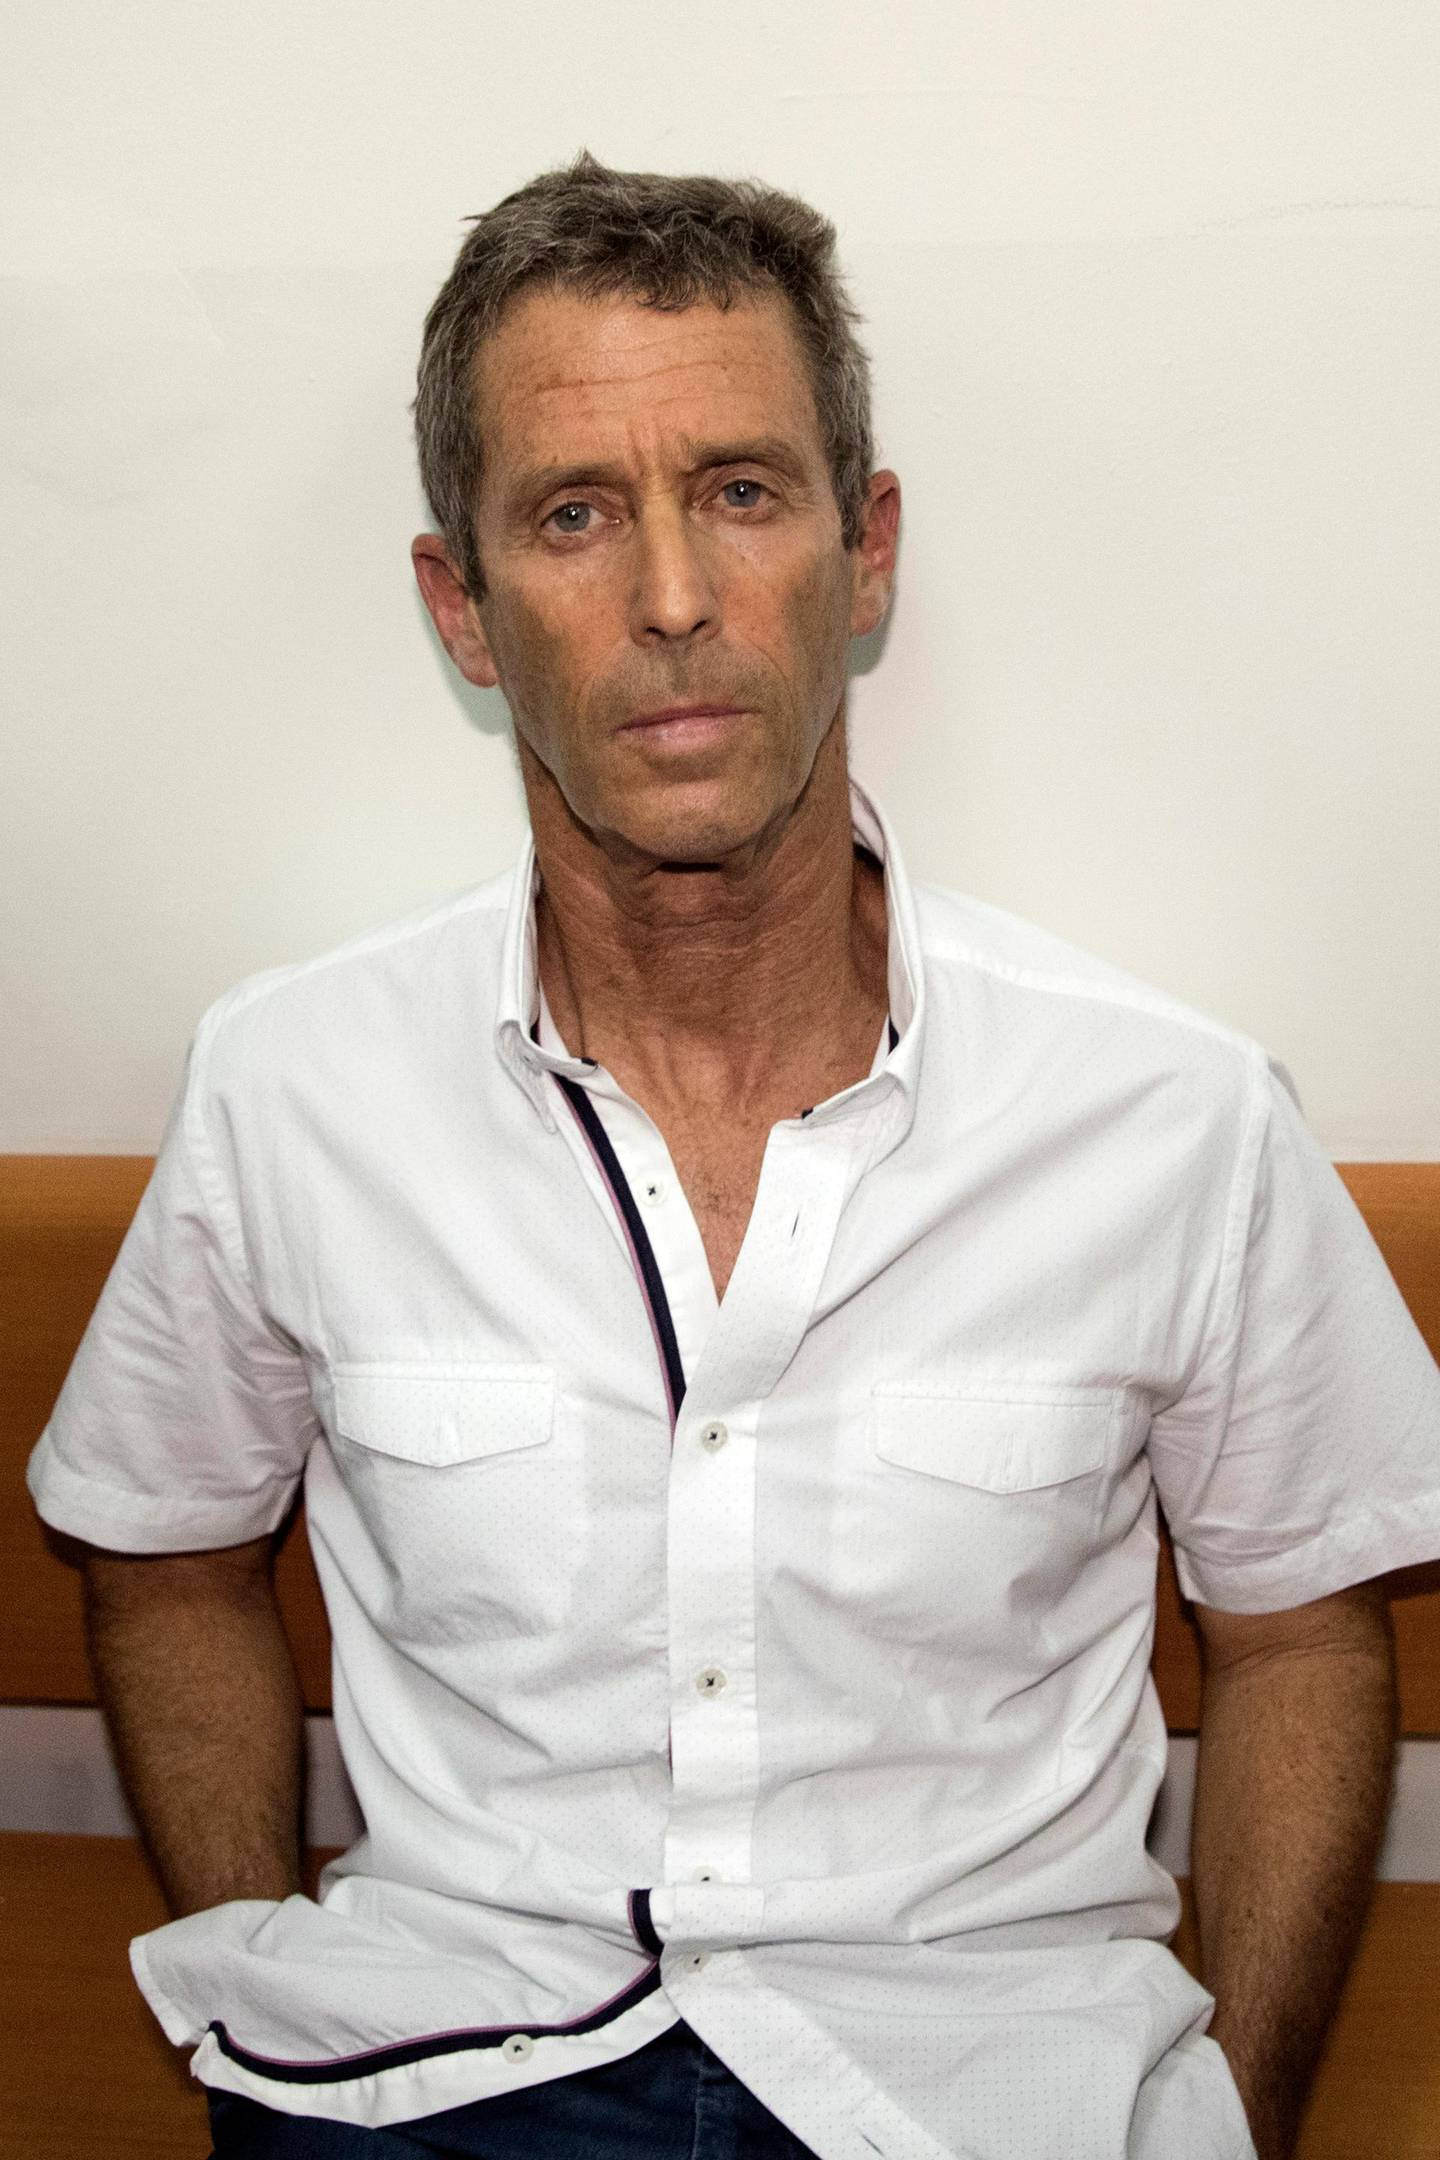 French-Israeli diamond magnate Beny Steinmetz sits at the Israeli Rishon Lezion Justice court, near Tel Aviv on August 14, 2017 after he was detained as part of an international money laundering investigation, authorities said.  Israeli police said five suspects had been detained for questioning on suspicions including money laundering, fraud, forgery, obstruction of justice and bribery. / AFP PHOTO / JACK GUEZ